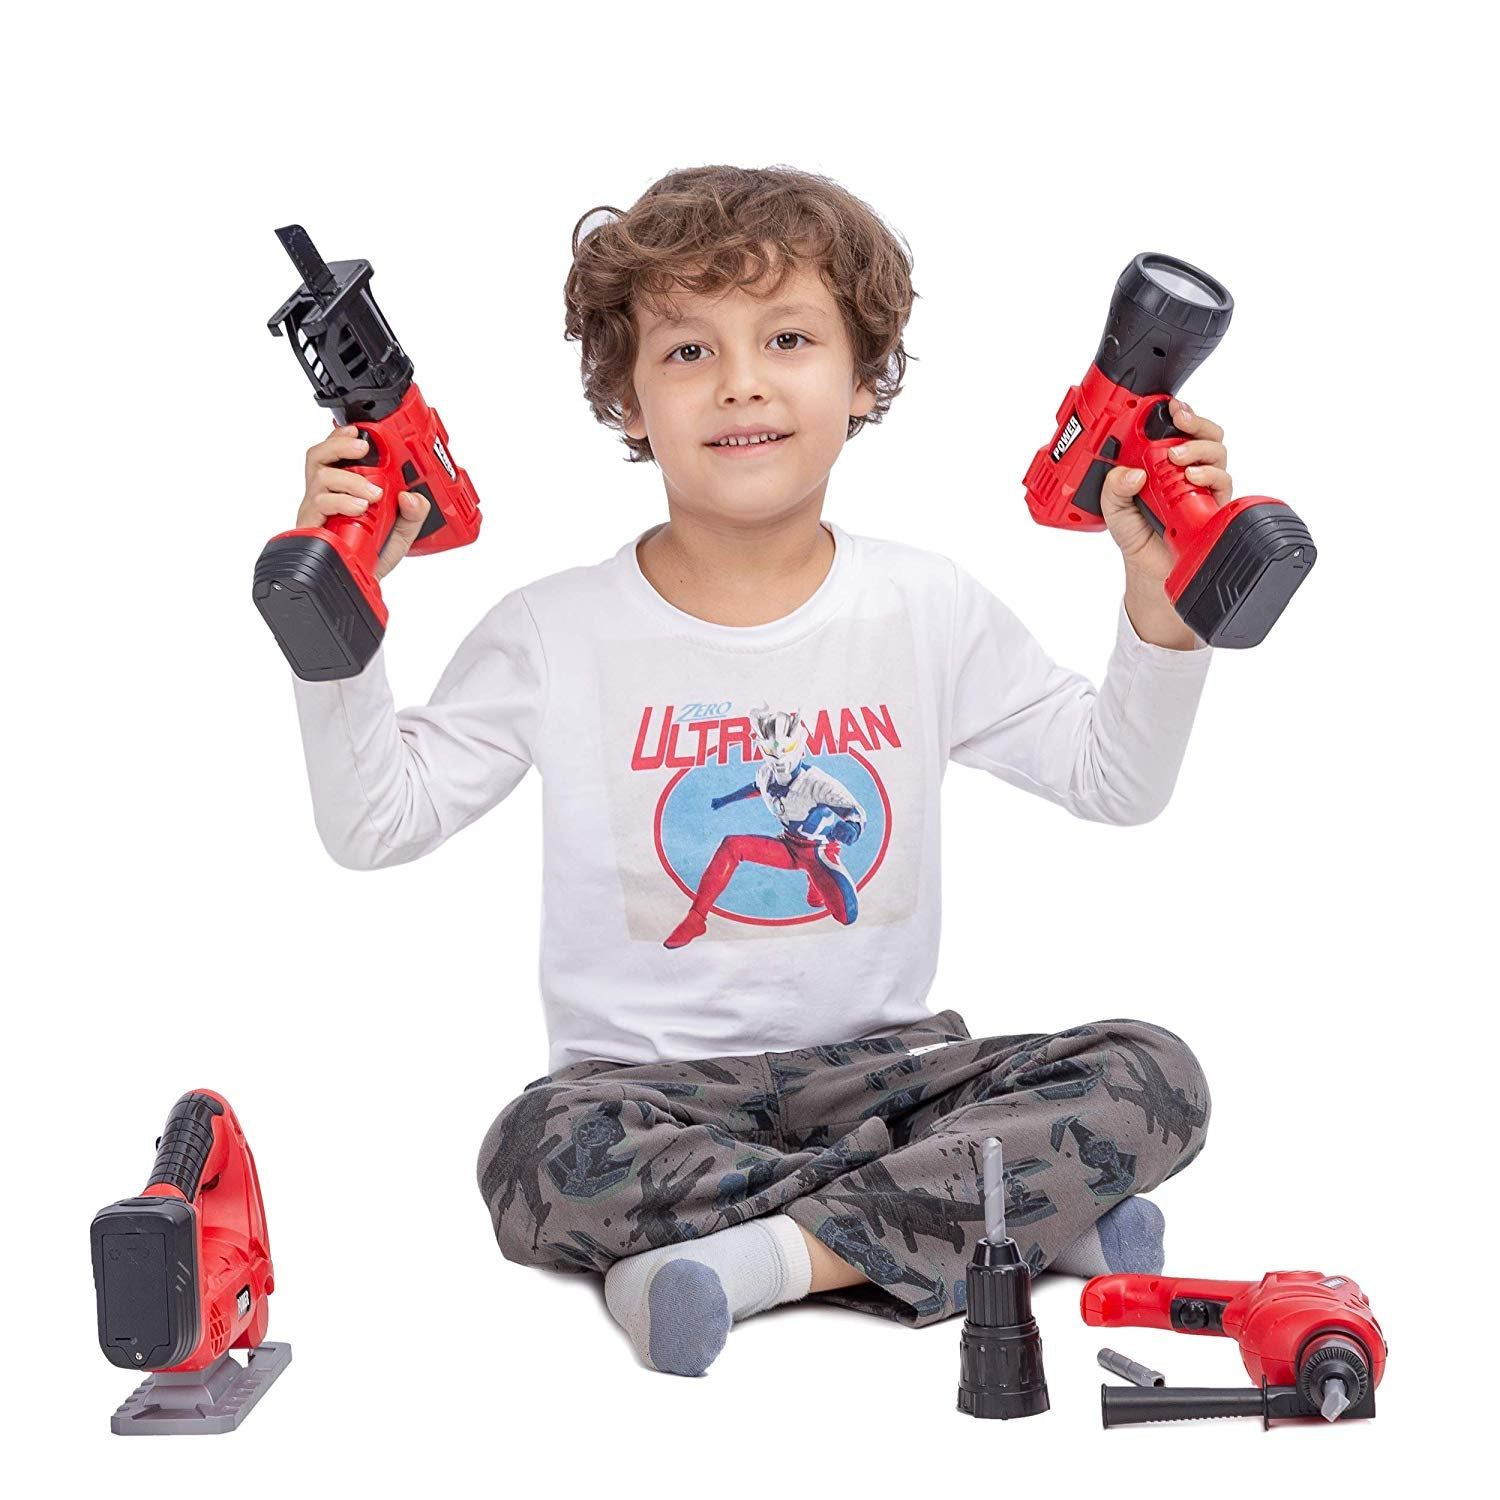 4-in-1 Construction Electric Tool Playset